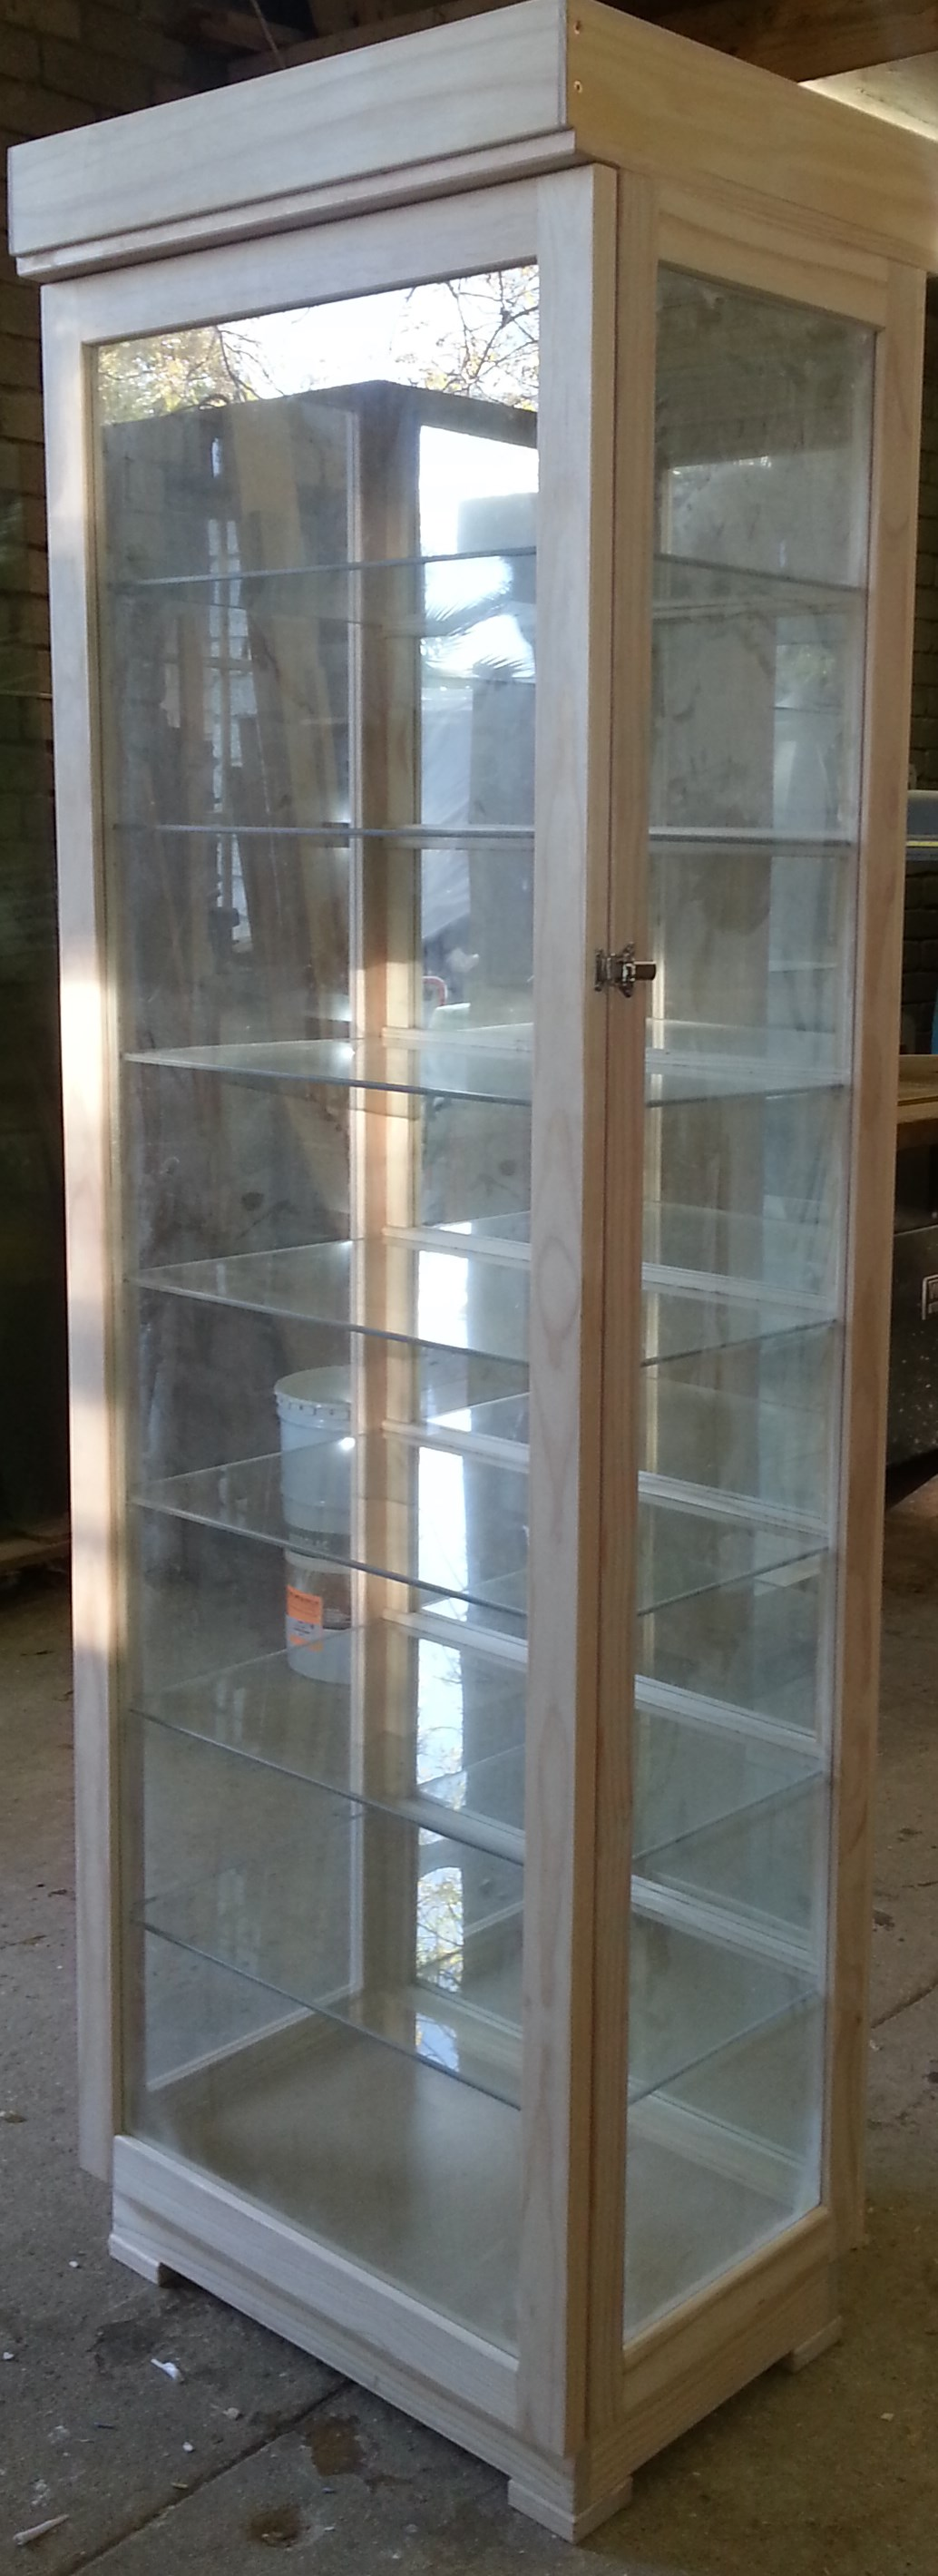 """Vertoon Kas / """"Display Cabinets wit Unrestricted view, Dust Proof !  Quality Custom made"""